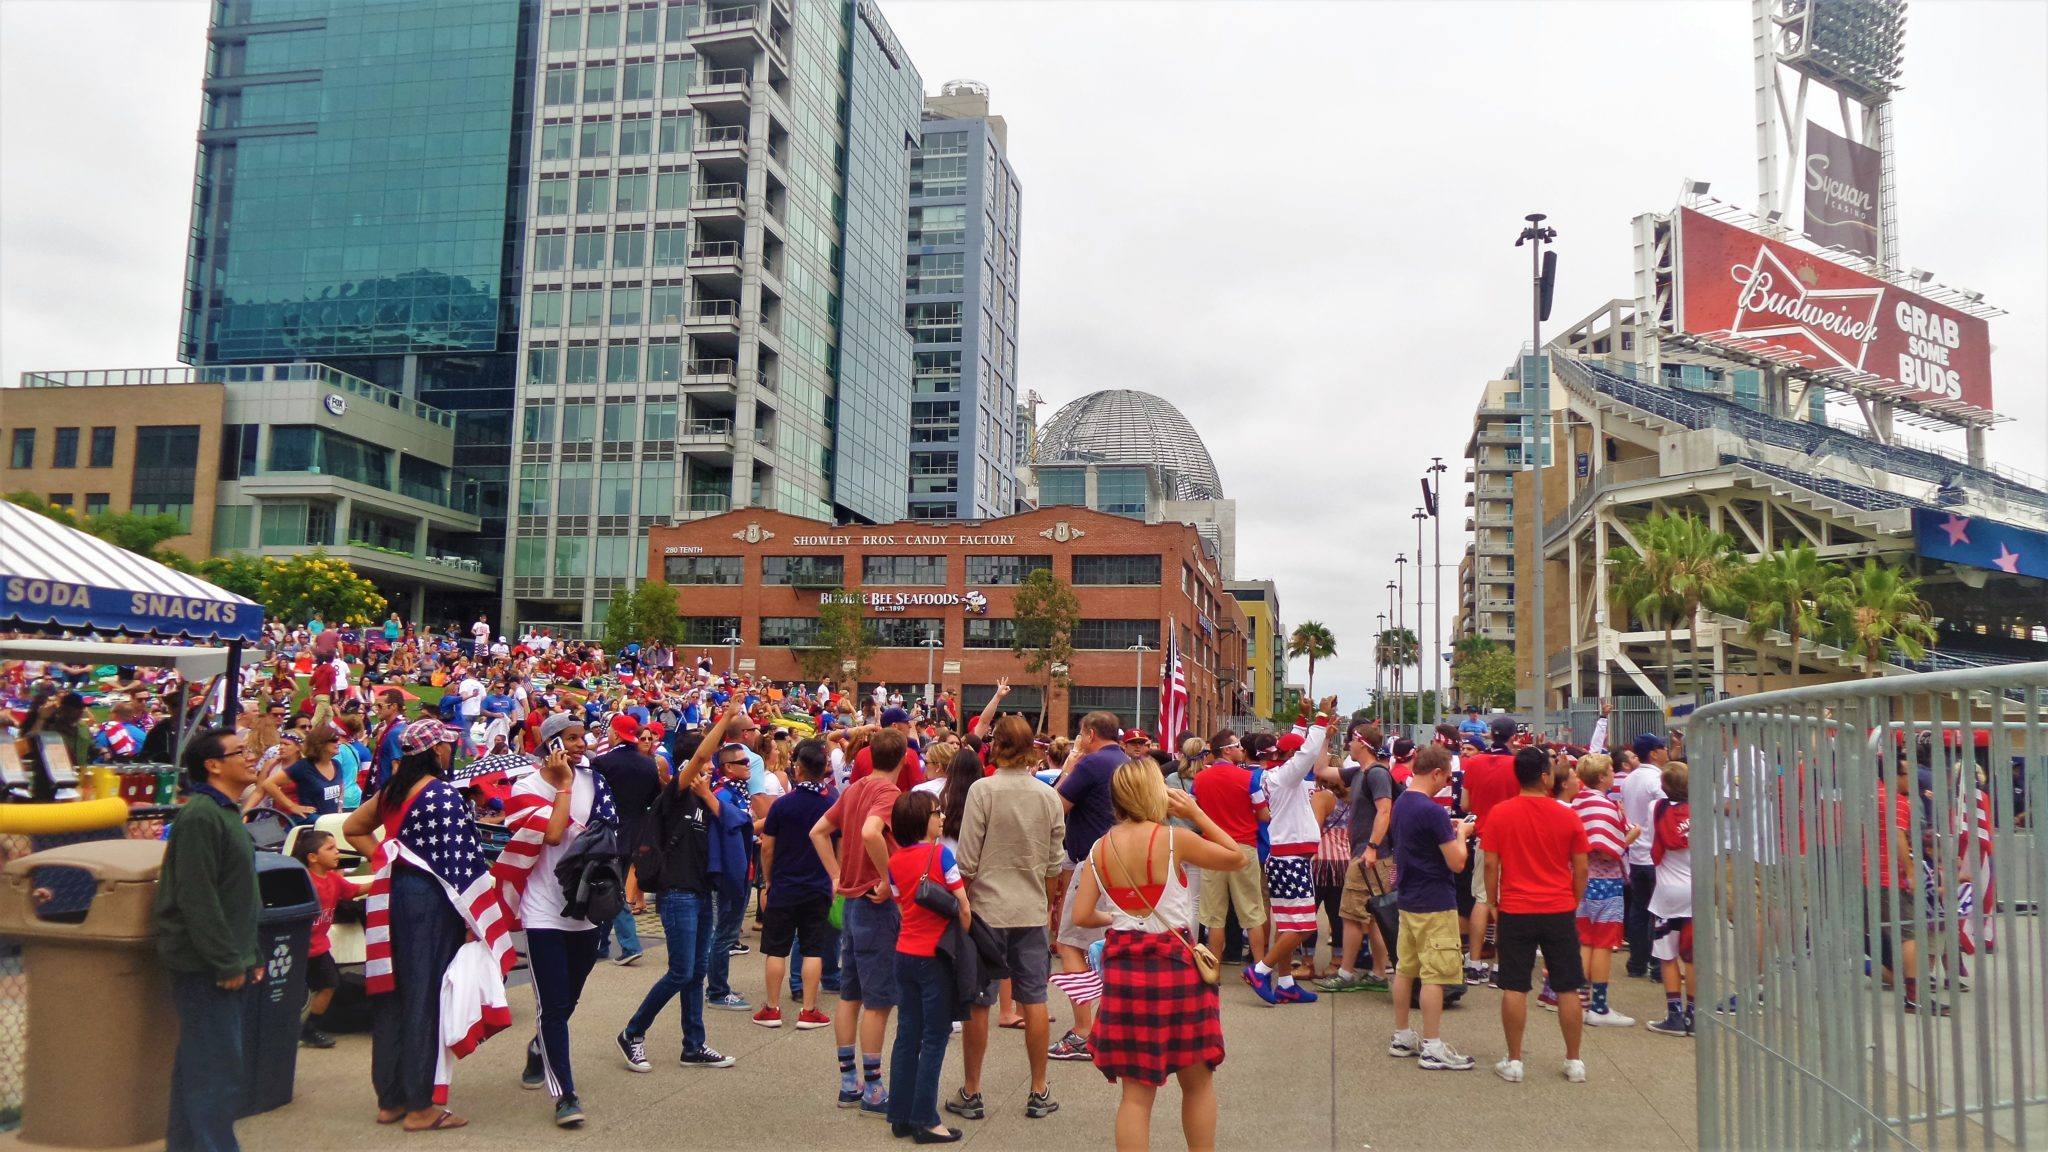 Crowd at 4th july celebrations in San Diego